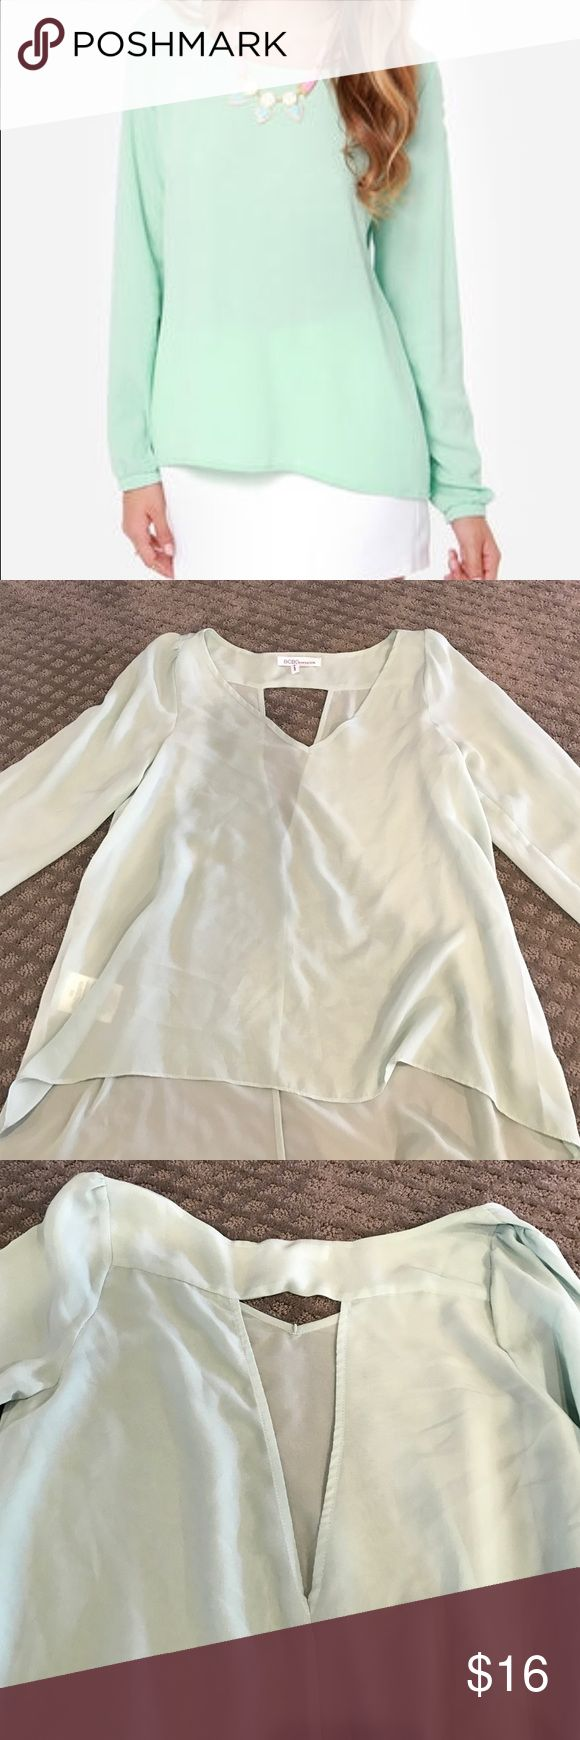 NWOT Mint Blouse Never worn Mint sheer Blouse with cute back cut out BCBGeneration Tops Blouses